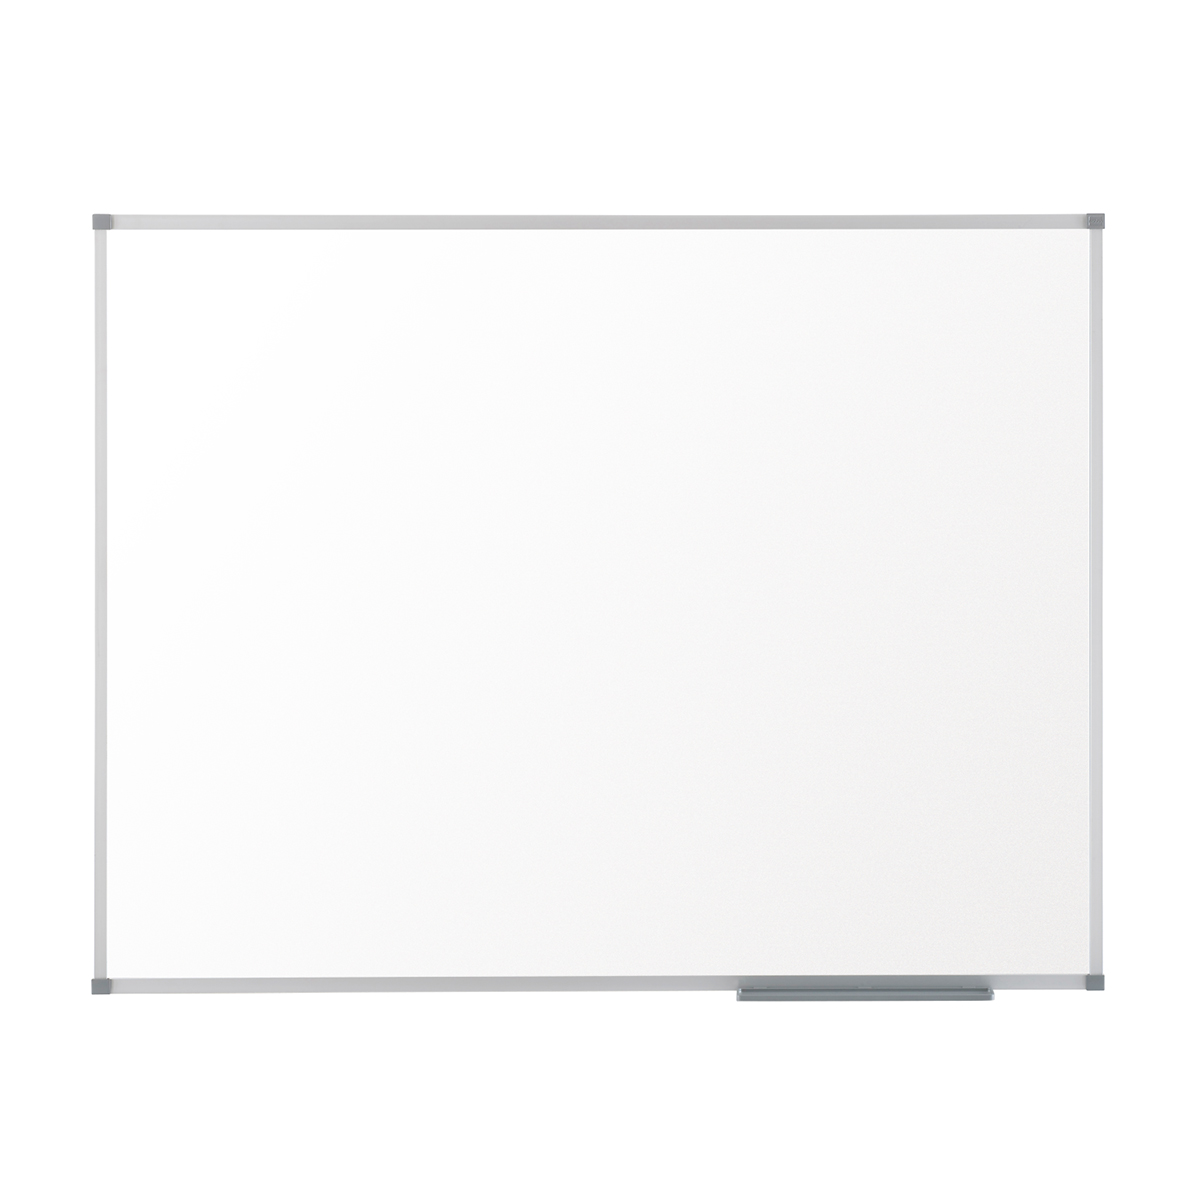 Nobo 1905214 Basic Steel Magnetic Whiteboard 2400 x 1200mm